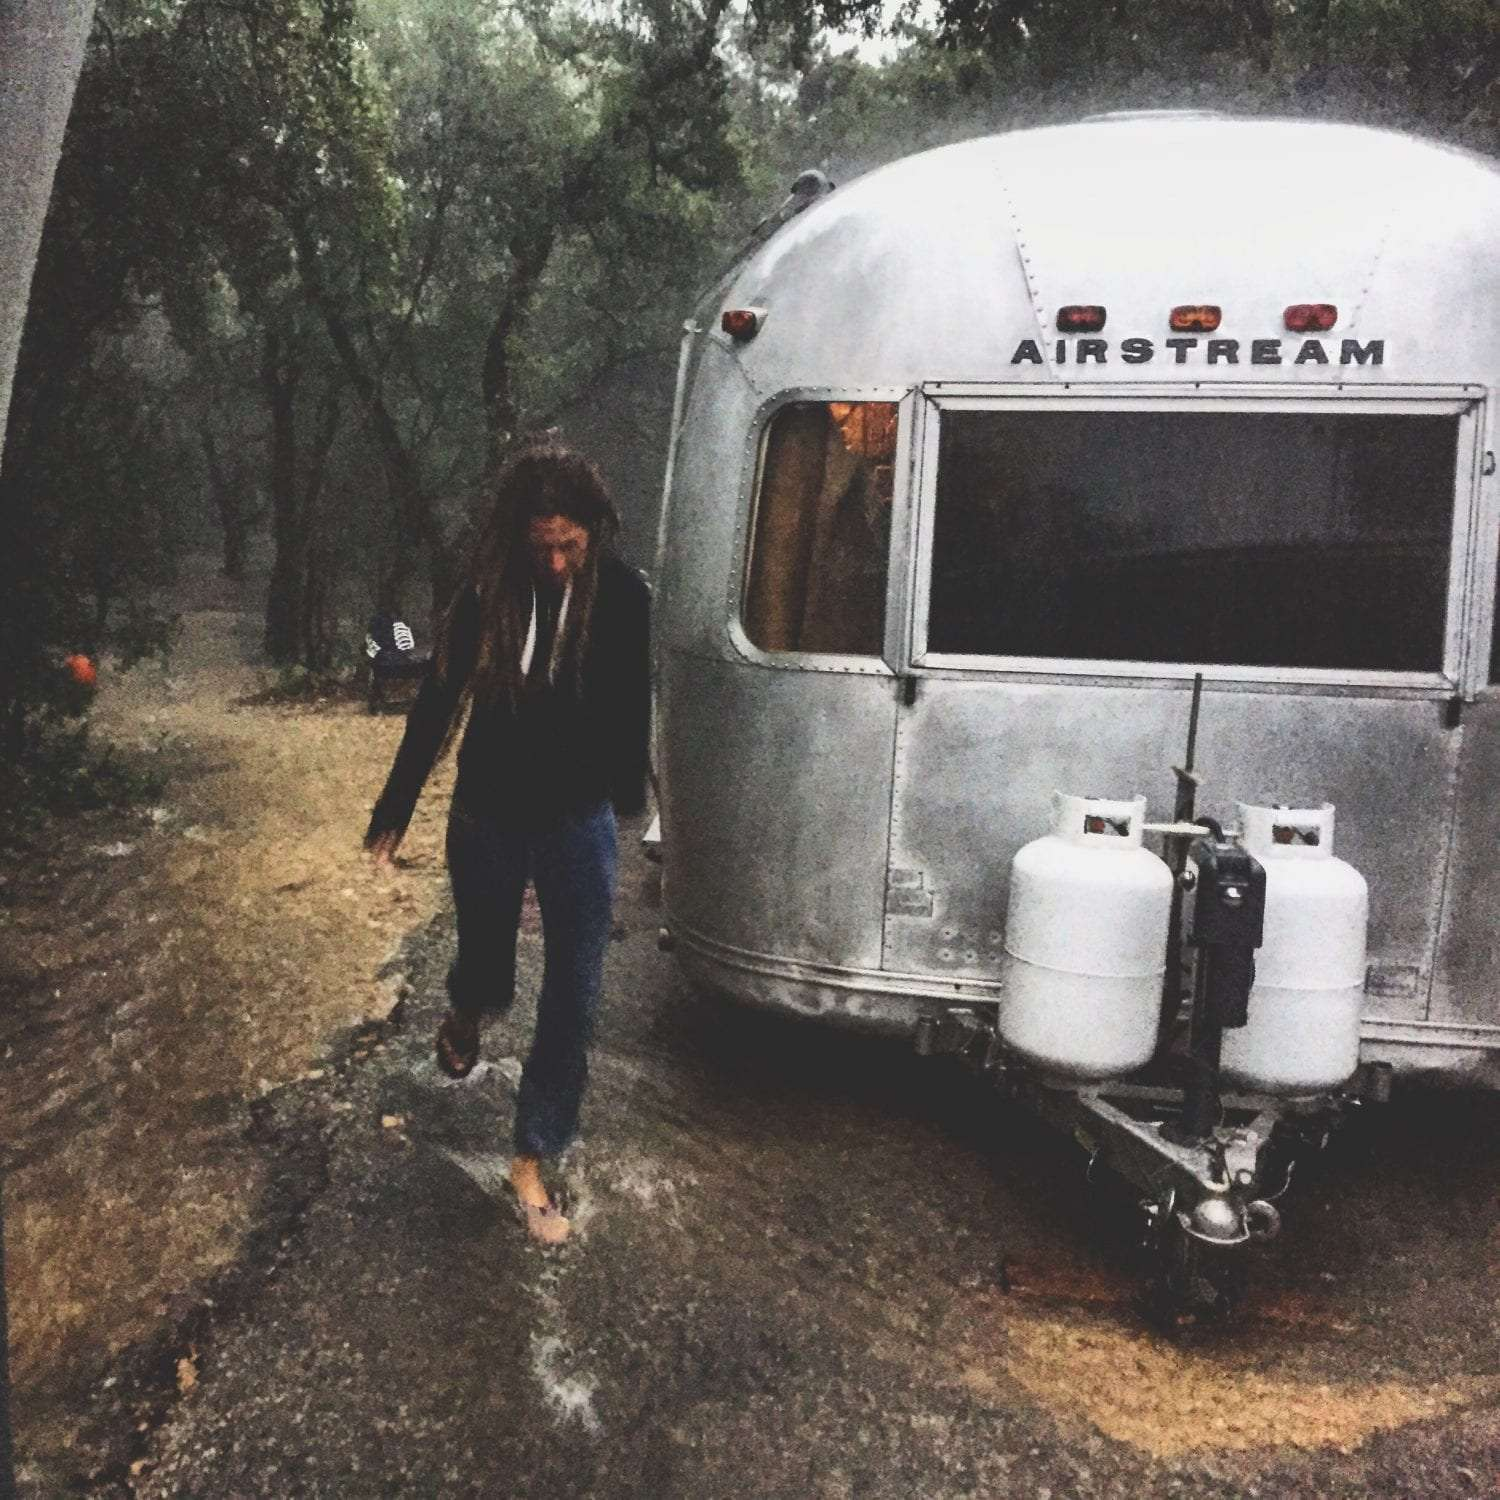 A lovely young woman in a black hoodie runs through the rain in a storm, her airstream in the background